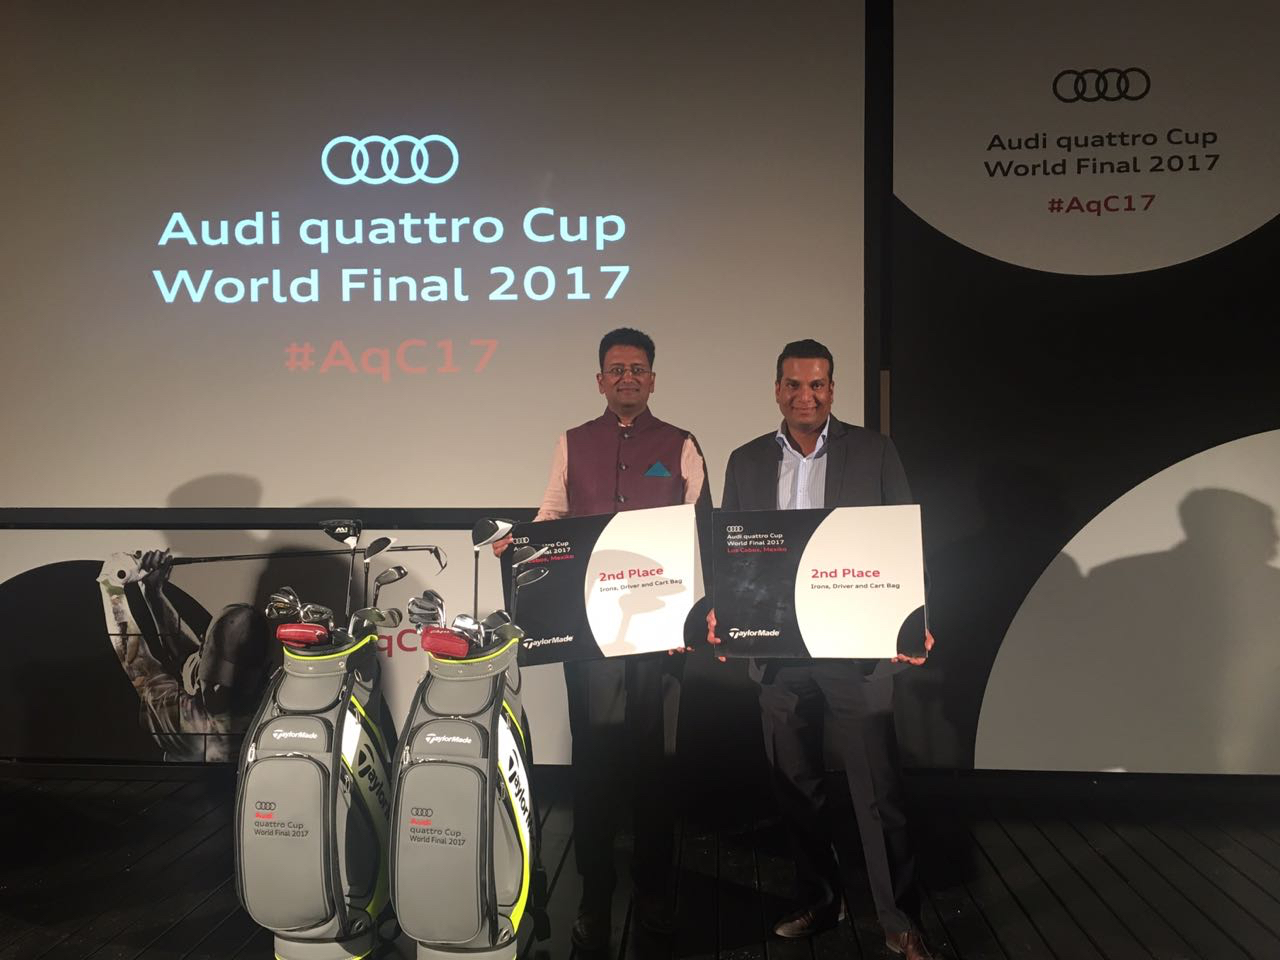 Audi-India-team-bags-second-place-in-the-world-finals-of-the-Audi-quattro-cup-2017_1-1